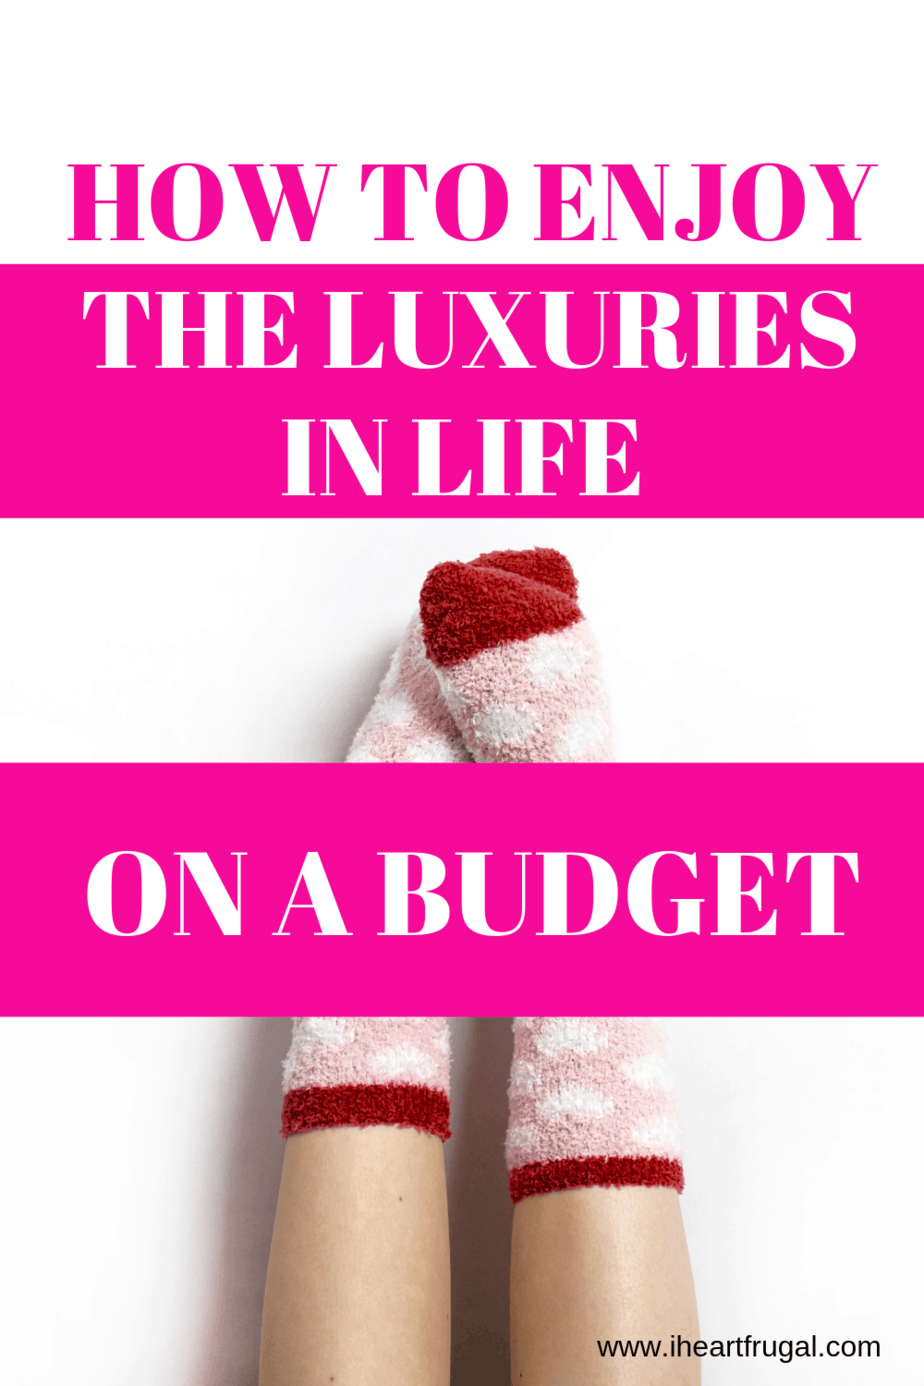 How to enjoy the luxuries in life on a budget